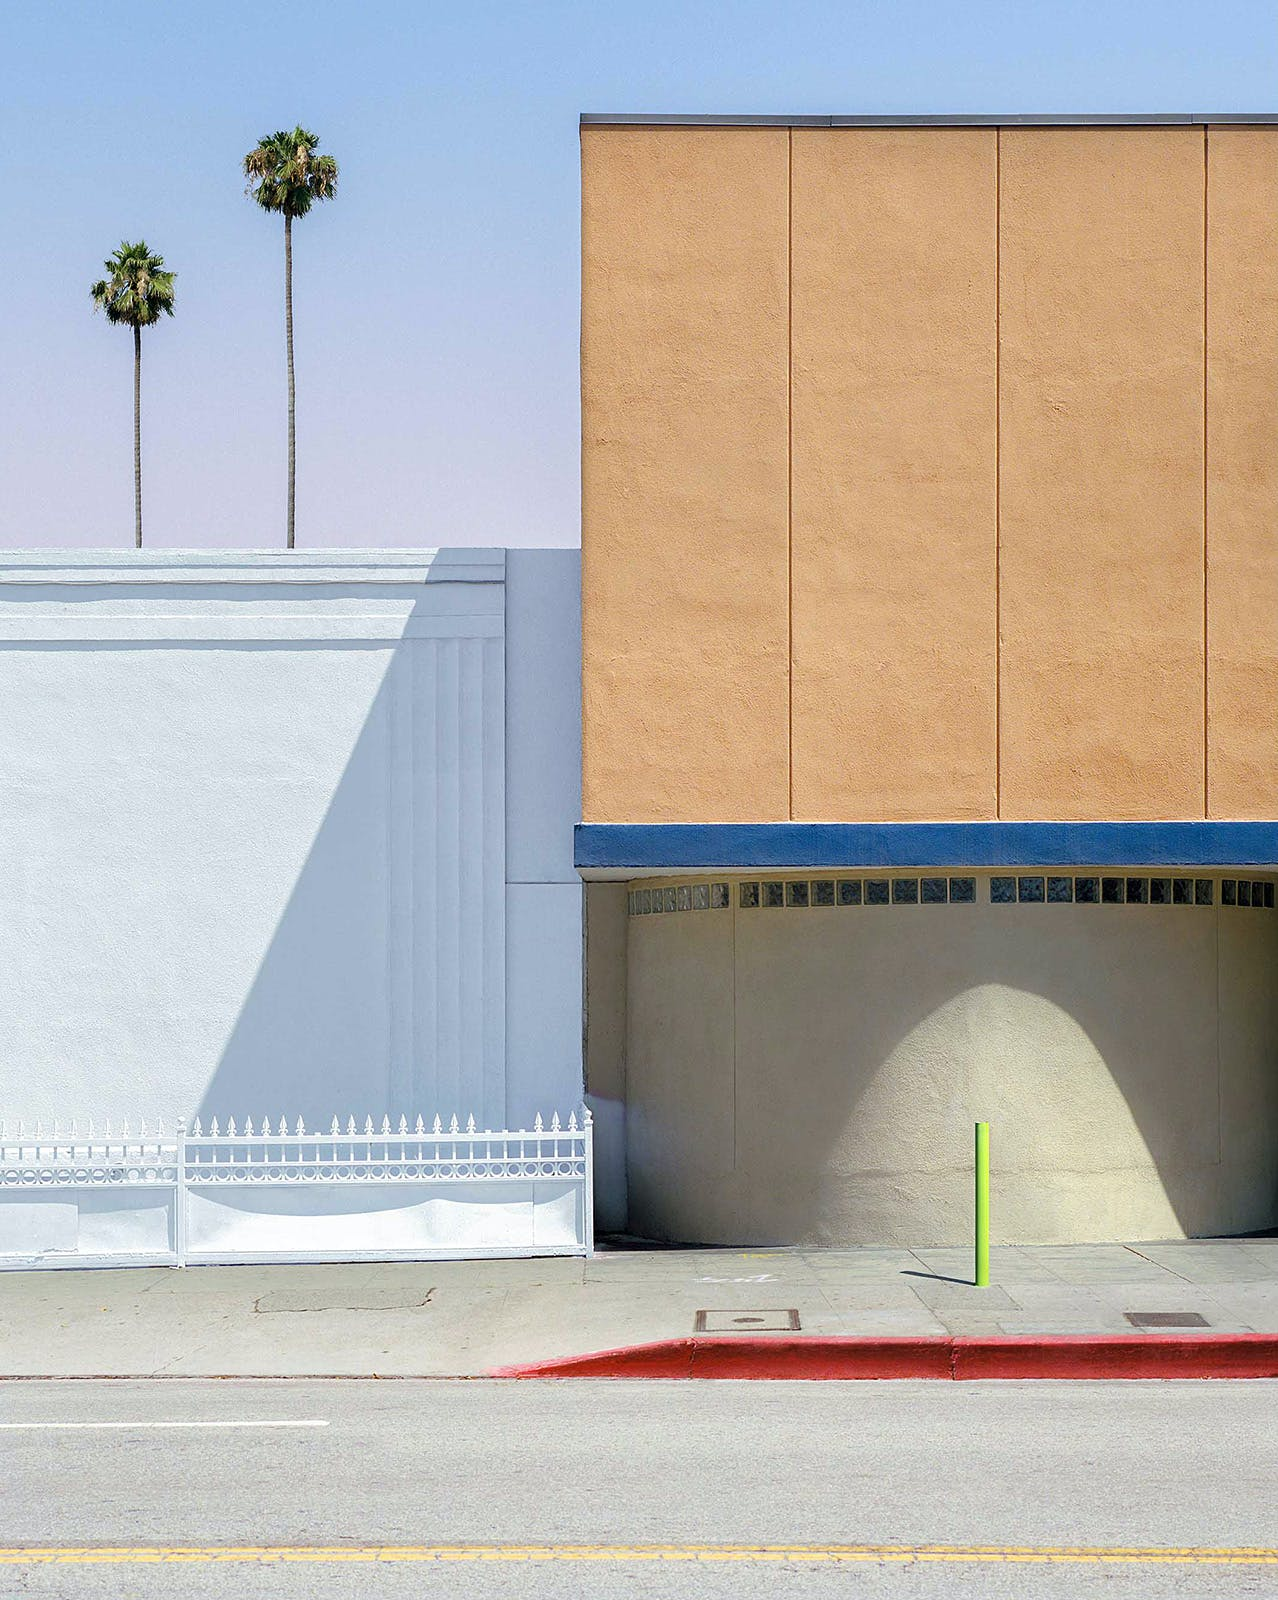 LA-based Photographer George Byrne Captures The City's